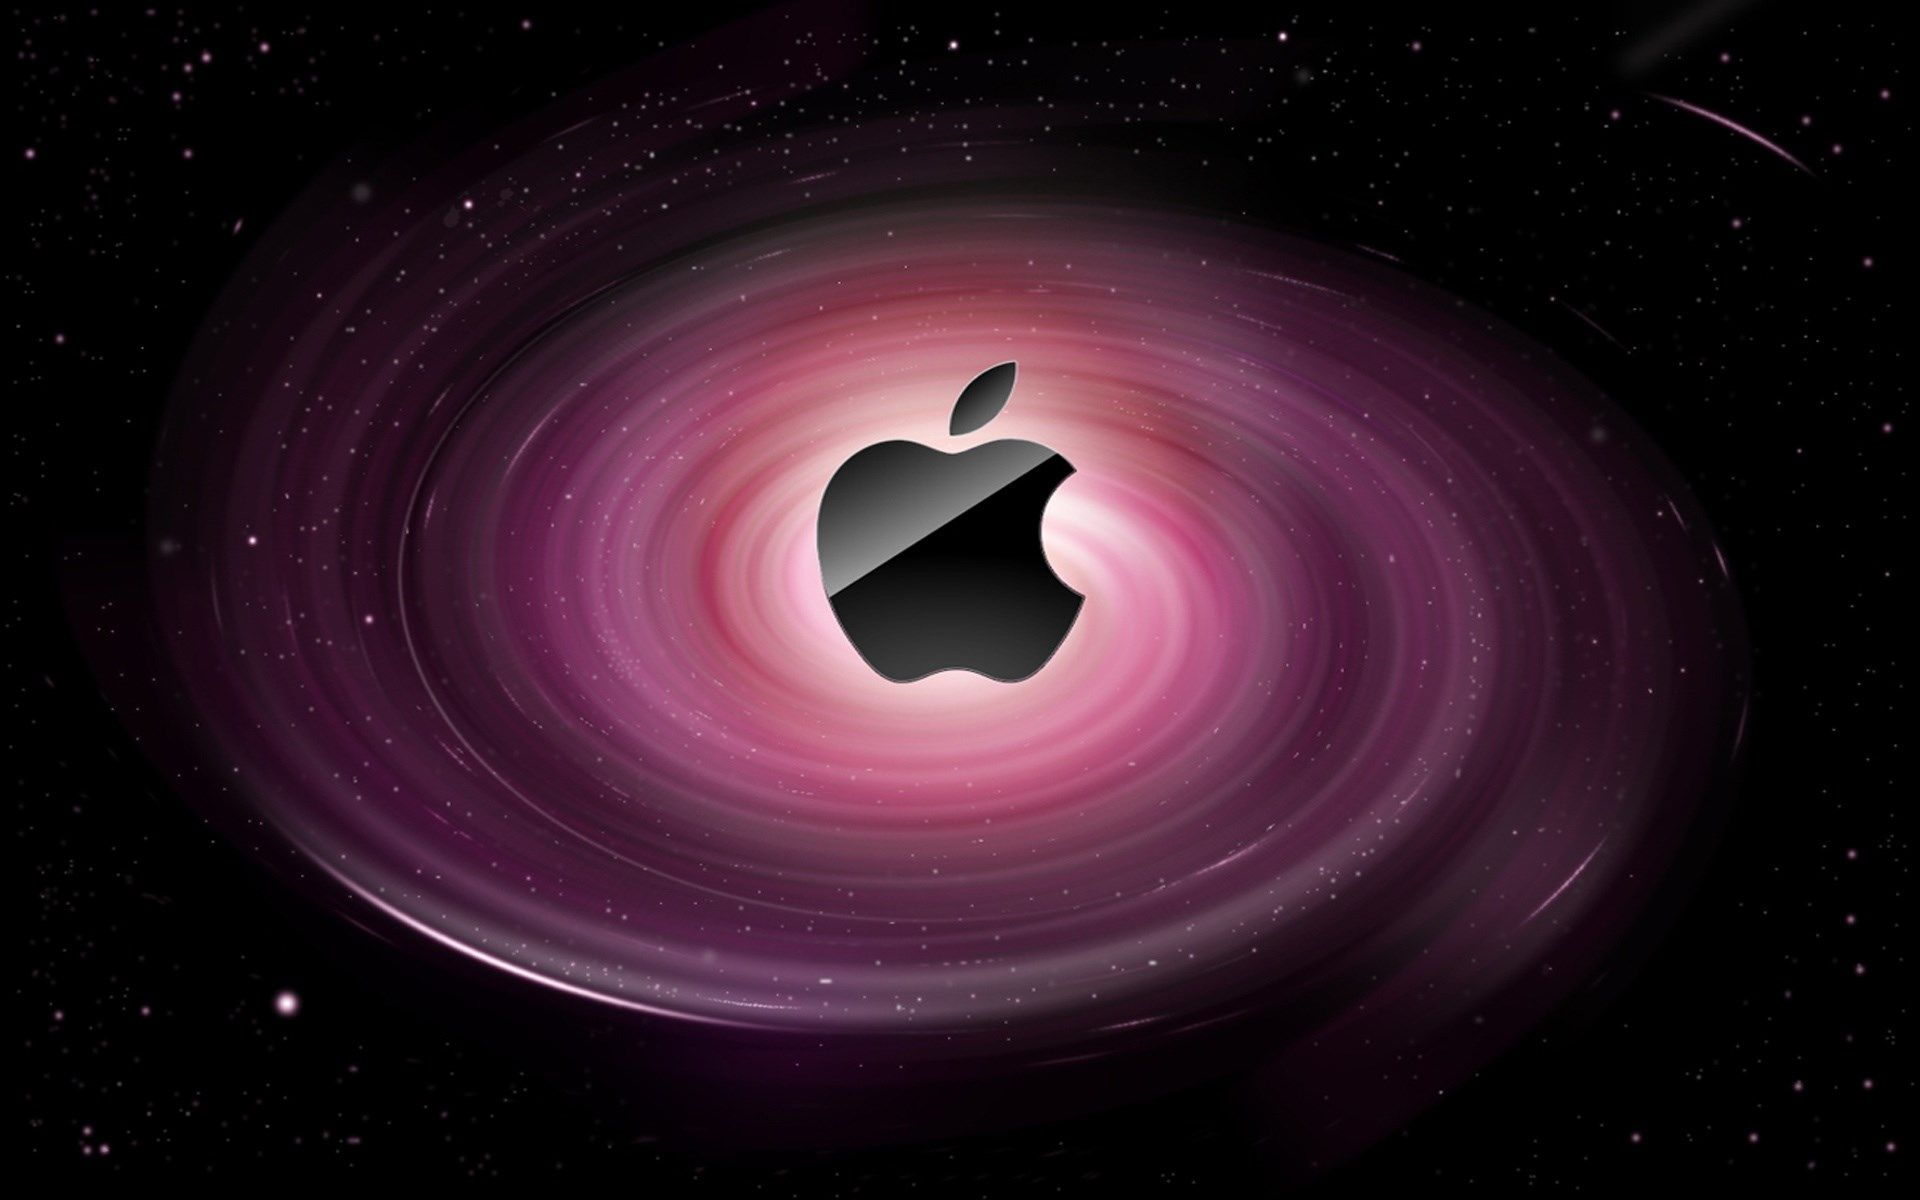 apple ipad wallpaper retina | lol | apple wallpaper, apple, apple